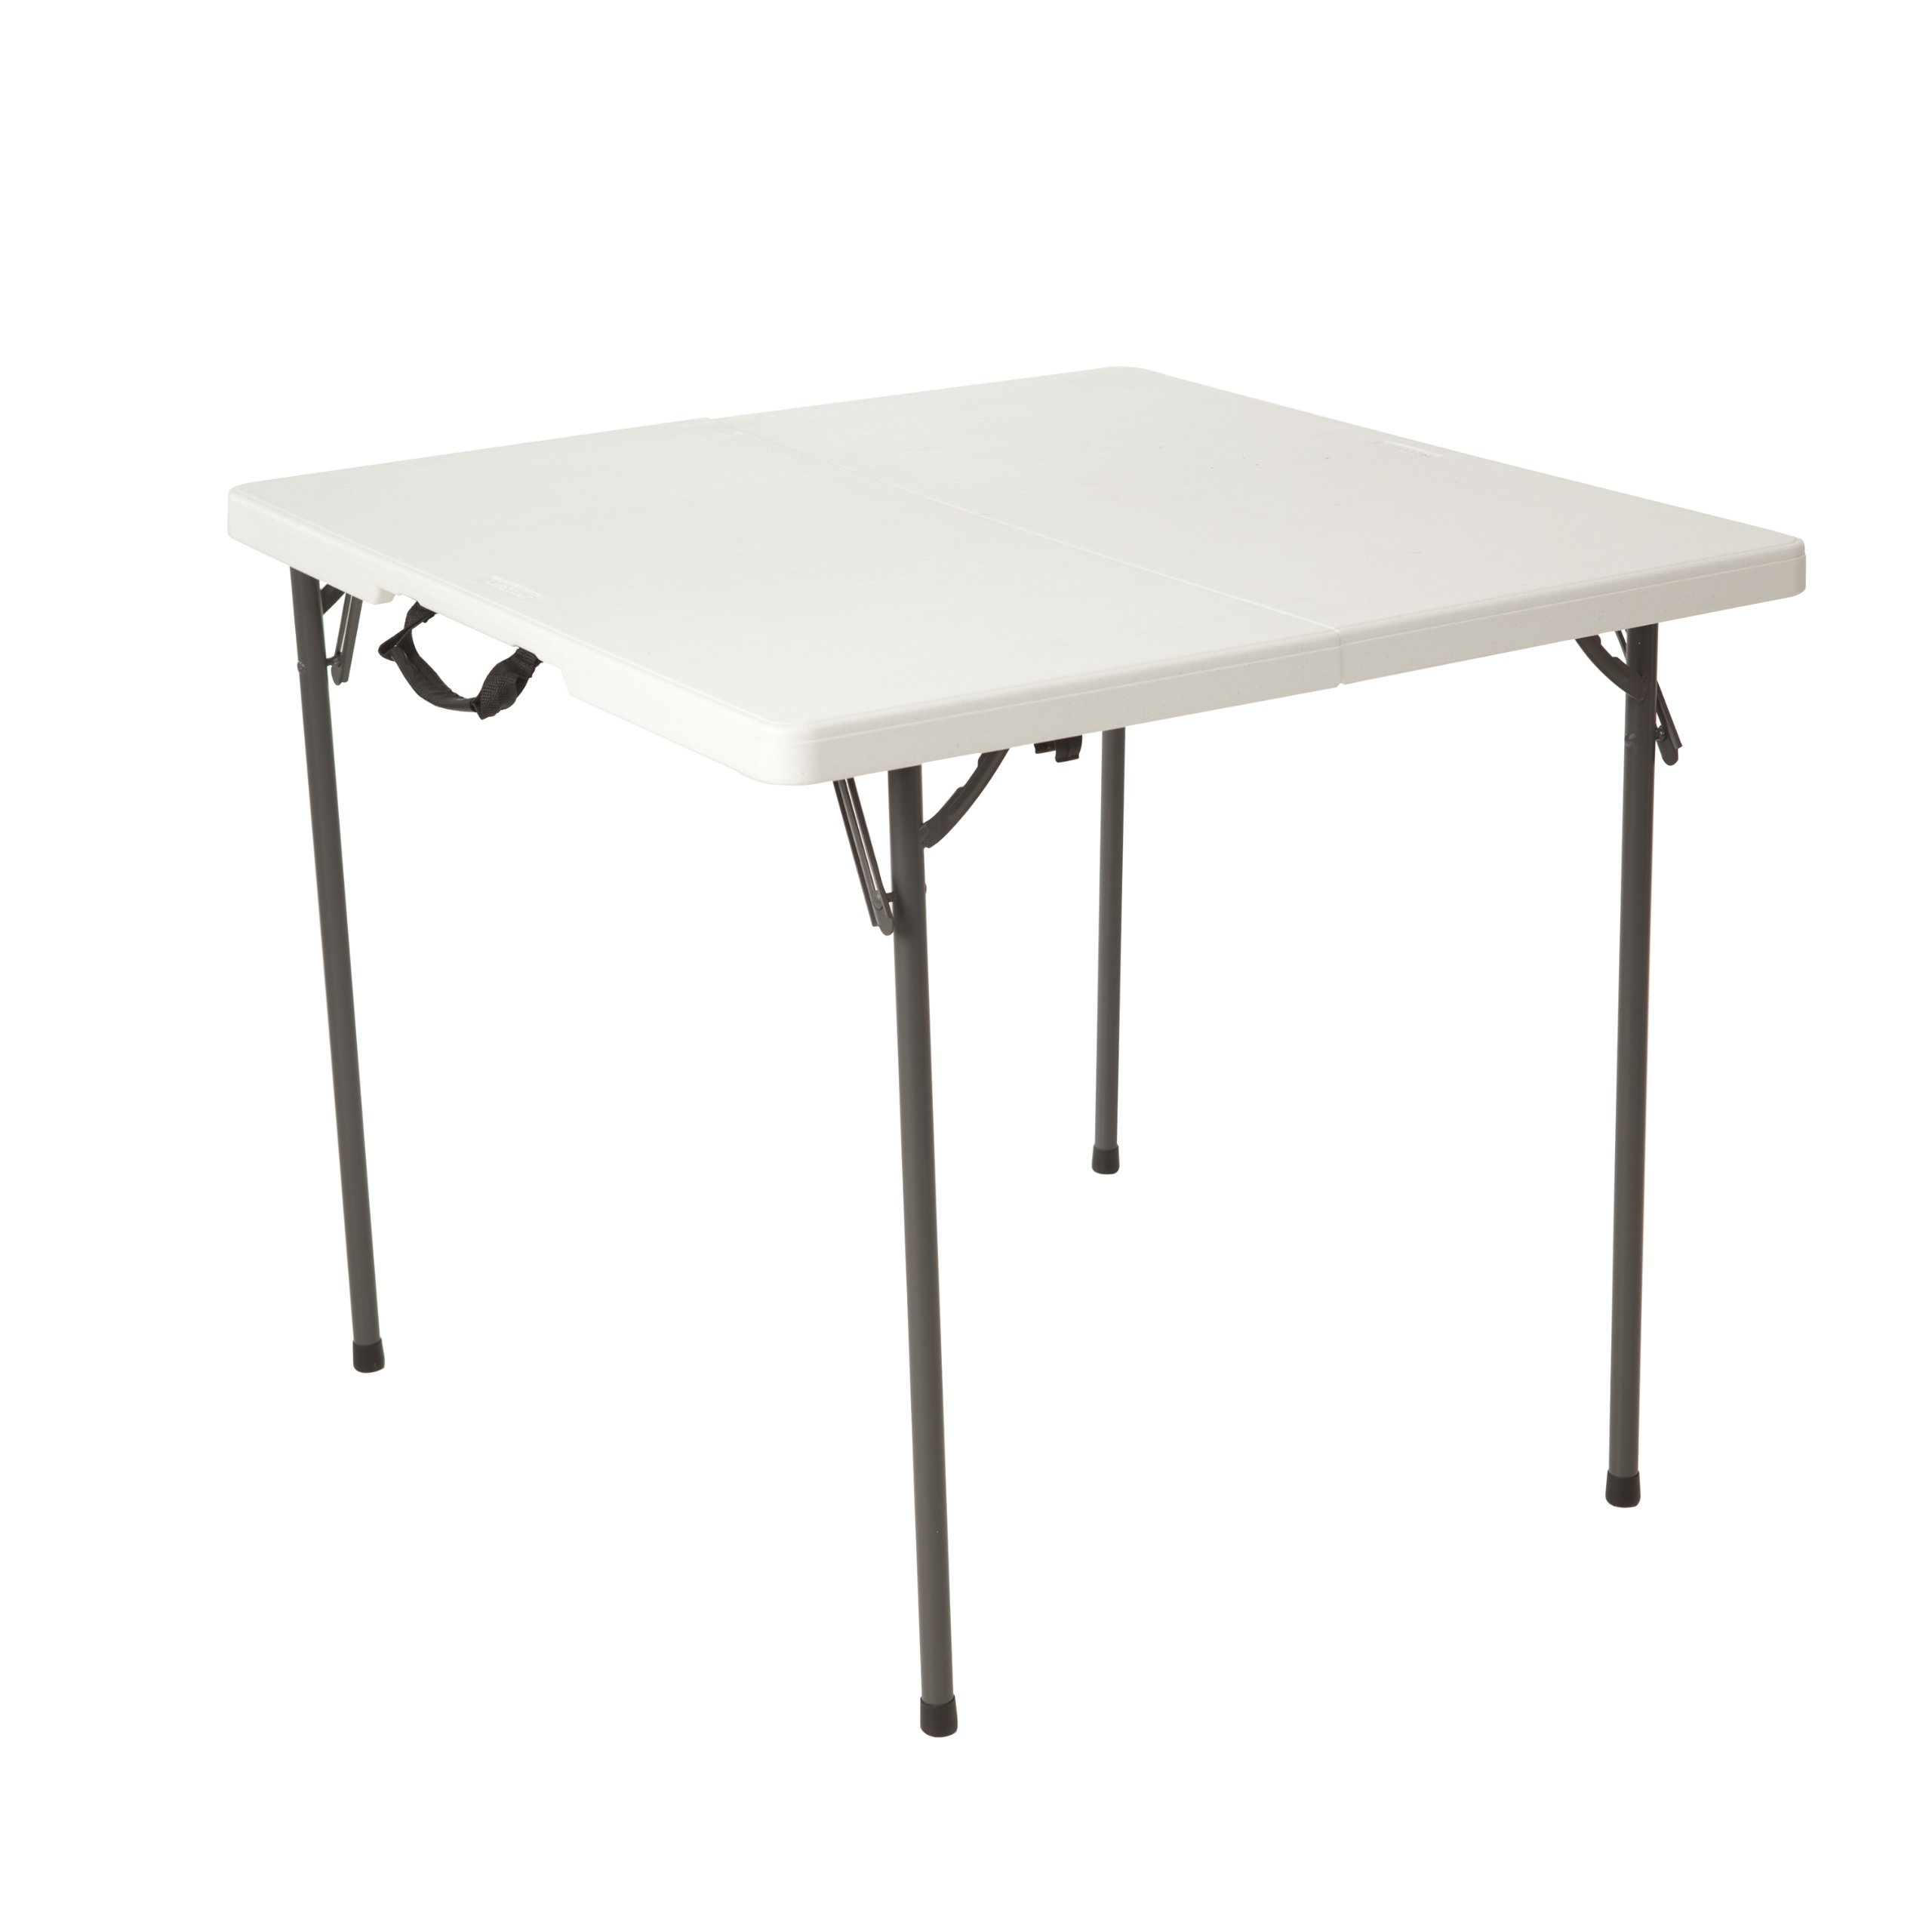 Lifetime 80273 Fold in Half Square Table, 34 Inch, White by Lifetime